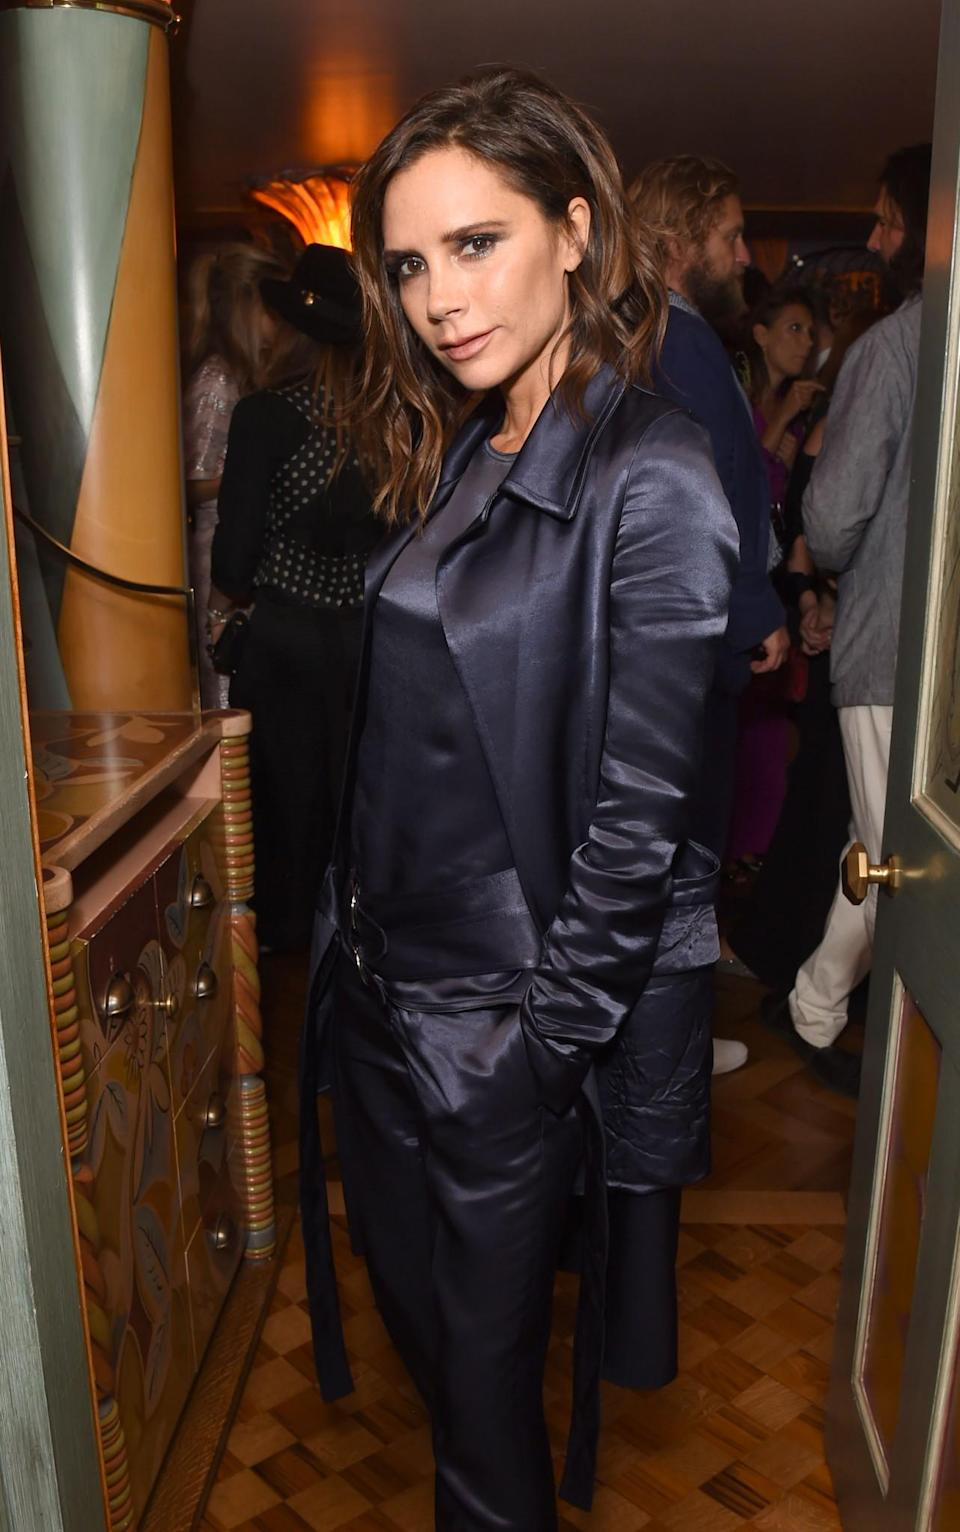 <p>Now: Once she married footballer David Beckham her career soared. She successfully transitioned from pop star to WAG, to fashion designer. Now, the mum of 4 is part of one of the most high-profile families in the world. [Photo: Getty] </p>